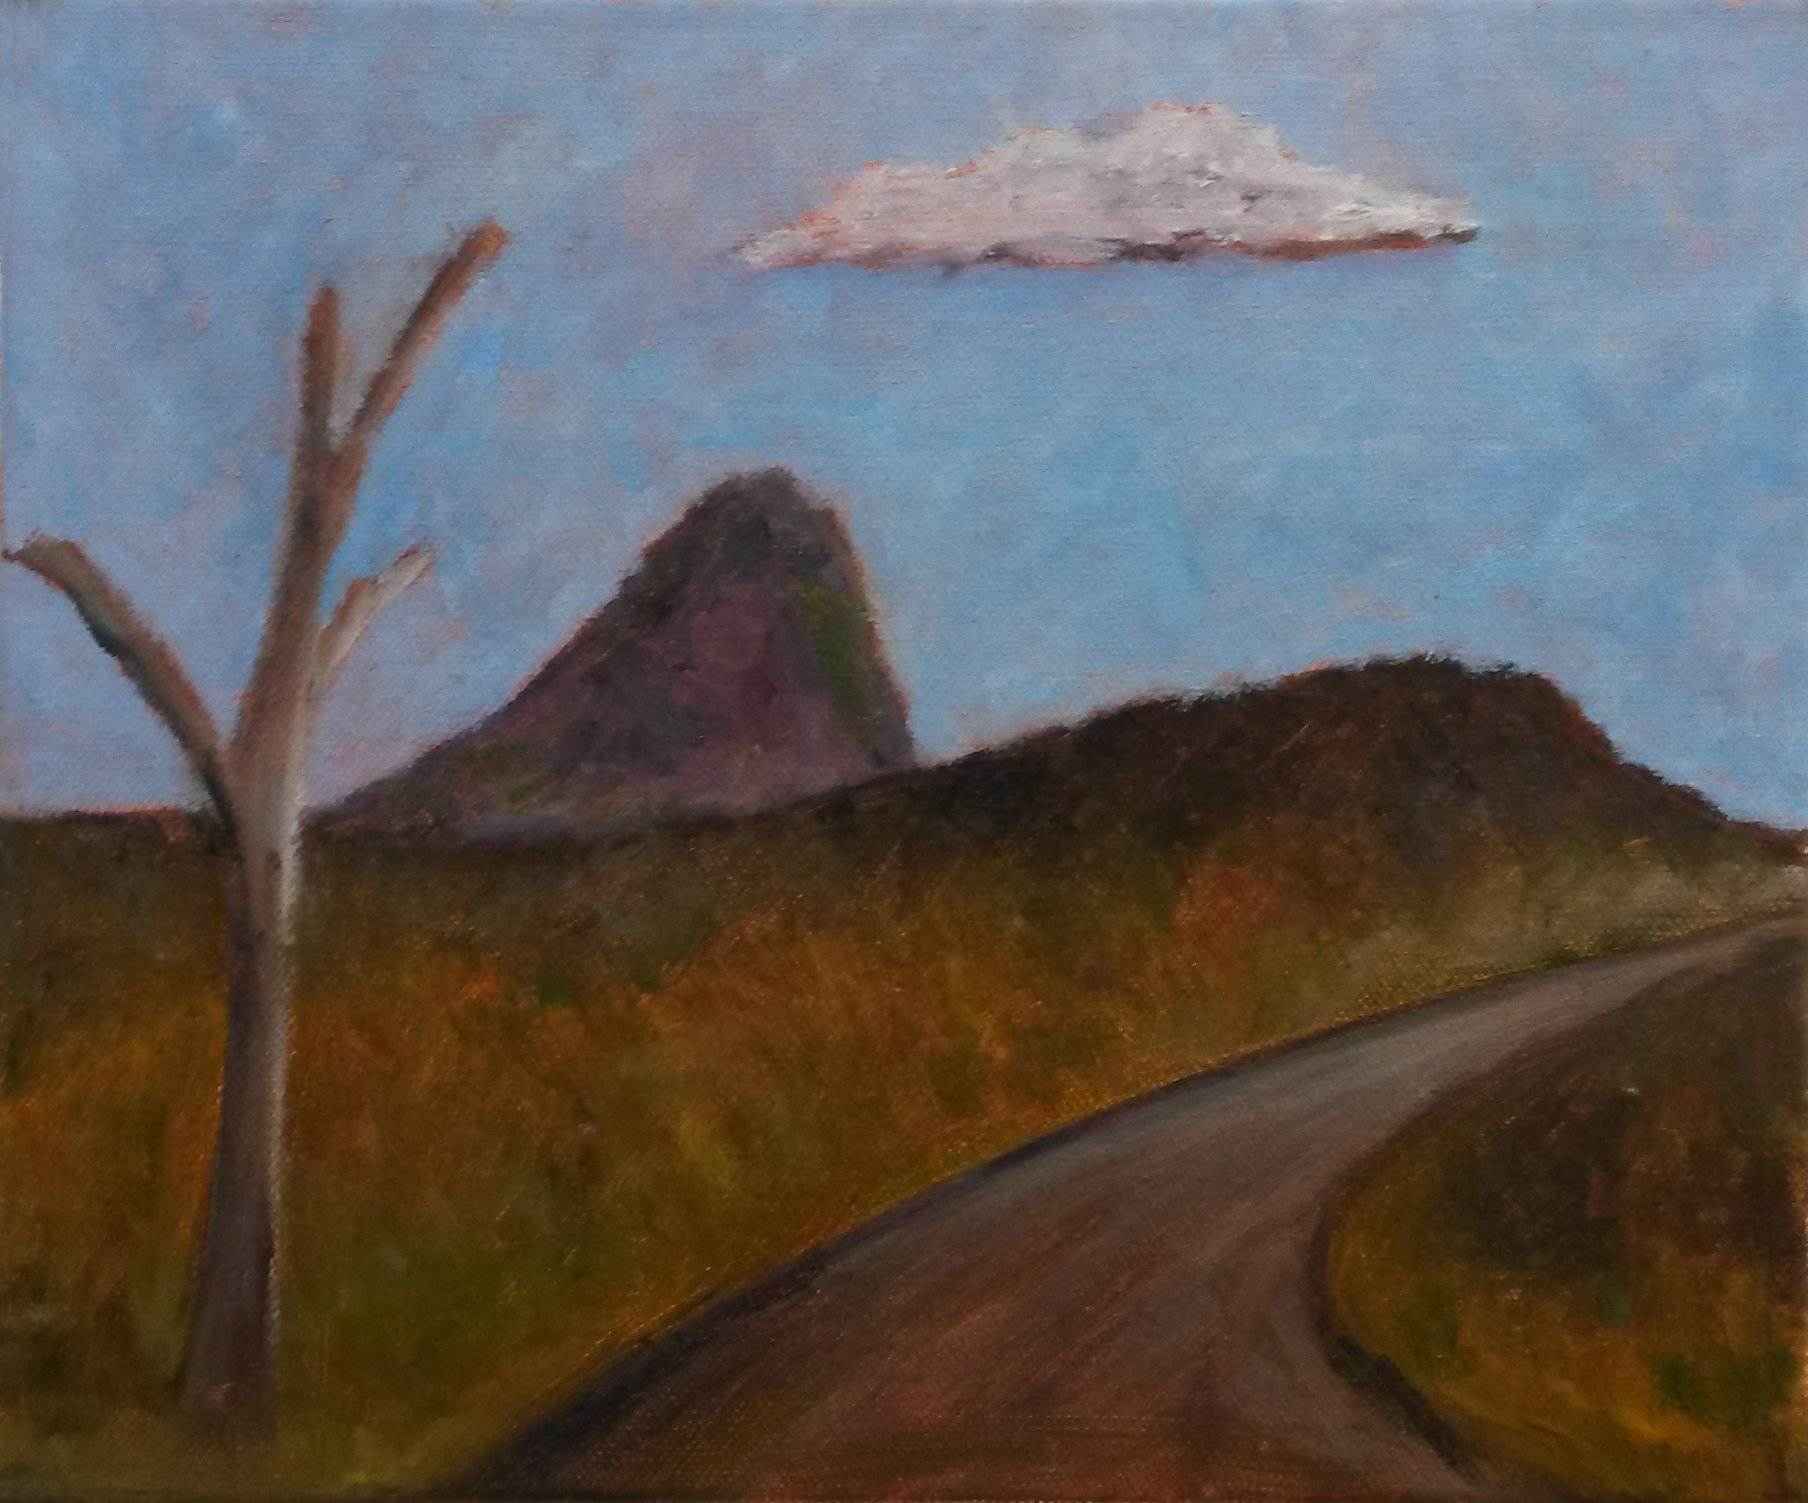 Malcolm Sands Bylong Valley Way Size: 30.5 x 25.5cm medium: Oil on Canvas Price: $220.00.jpg